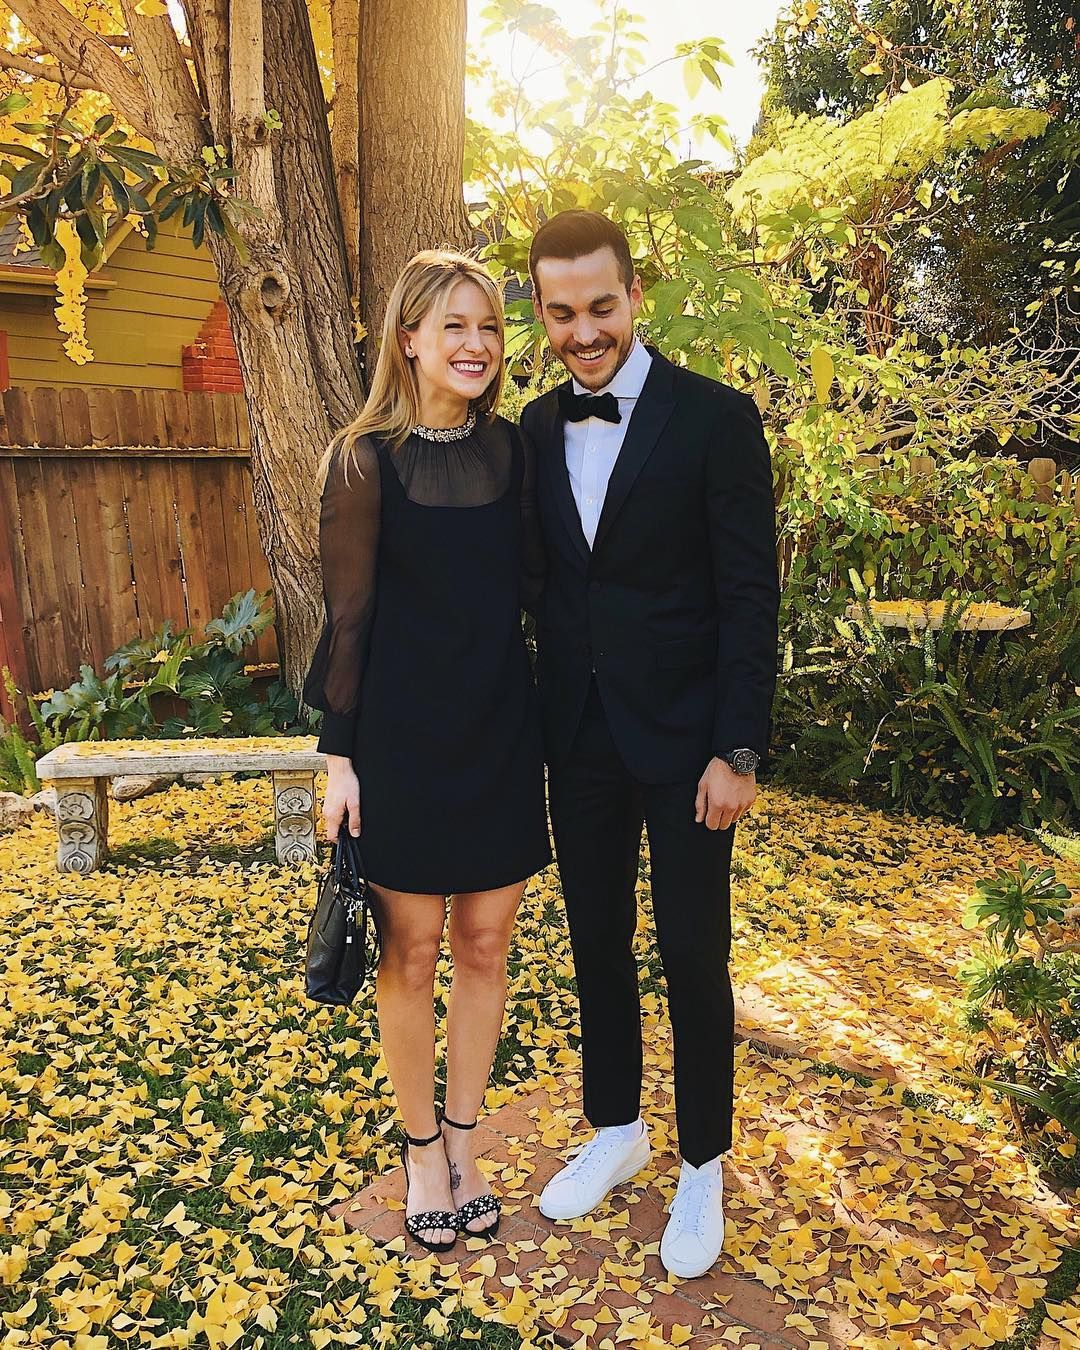 """Chris Wood on Instagram: """"not from our wedding BUT IT WILL BE SOON"""